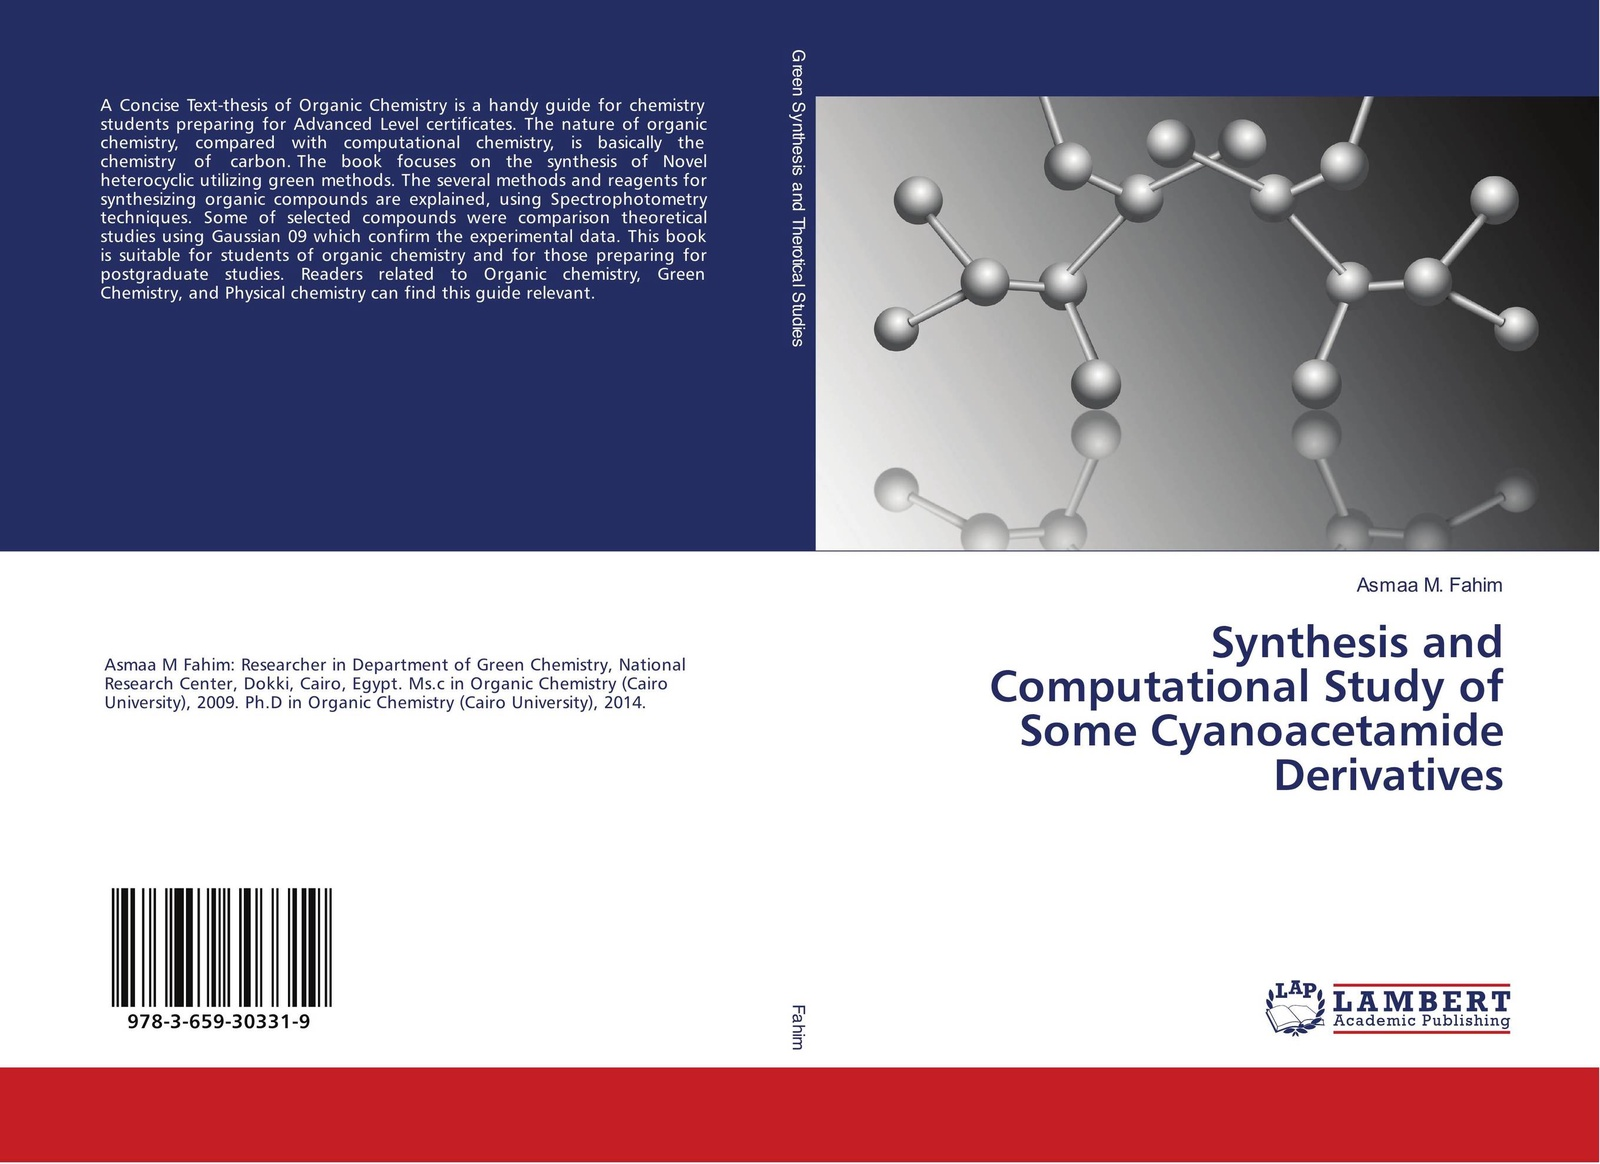 Asmaa M. Fahim Synthesis and Computational Study of Some Cyanoacetamide Derivatives kurt kolasinski w physical chemistry how chemistry works